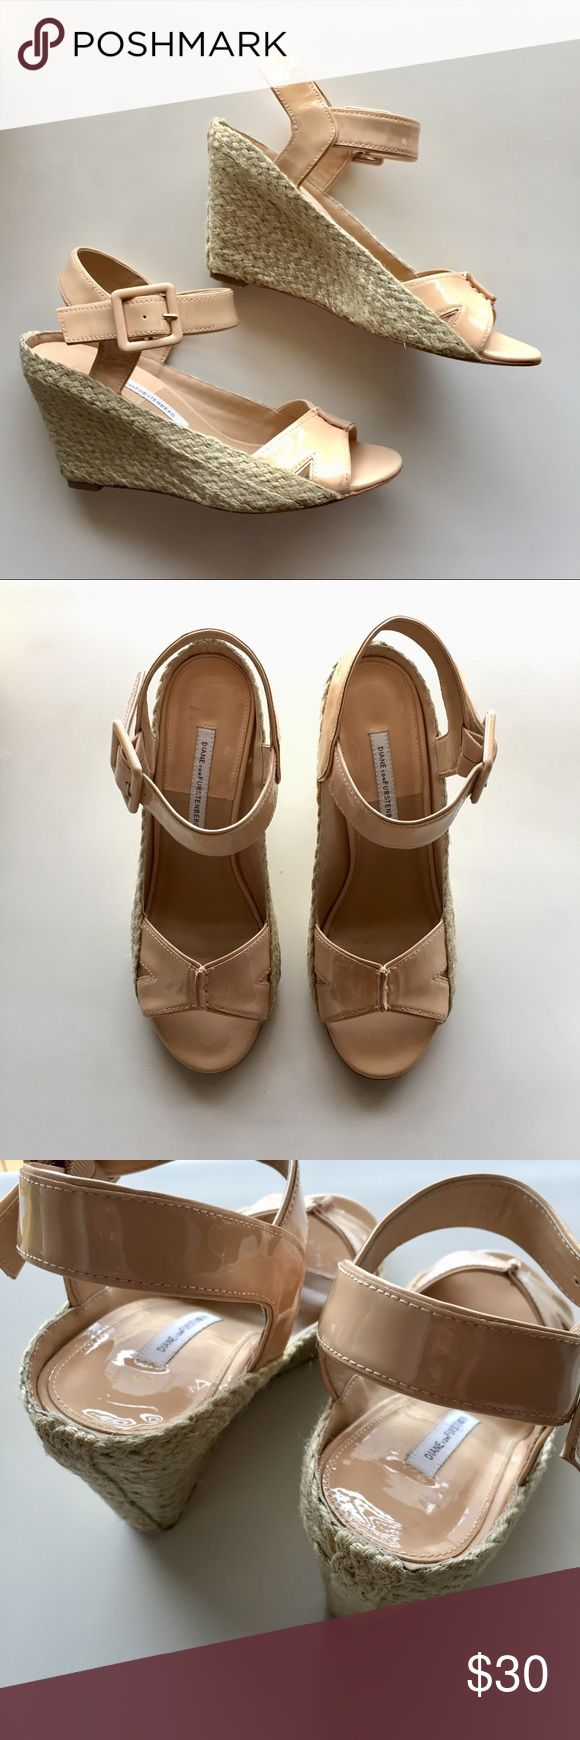 """DVF Nude Espadrilles Wedges Size 8 Hey y'all! Happy Shopping! 🎉 Re-POSH! I bought these a few weeks ago but they didn't fit me. They're a gently used pair of DVF espadrilles in patent leather. They're a beautiful nude/peach color. The upper leather and footbeds are in great condition but the soles show some wear. They're size 8 and I think they fit true to size except the toe area is narrow (which is why I'm selling them). Heel measures 3.5"""". Check out my closet for other items. Thanks…"""